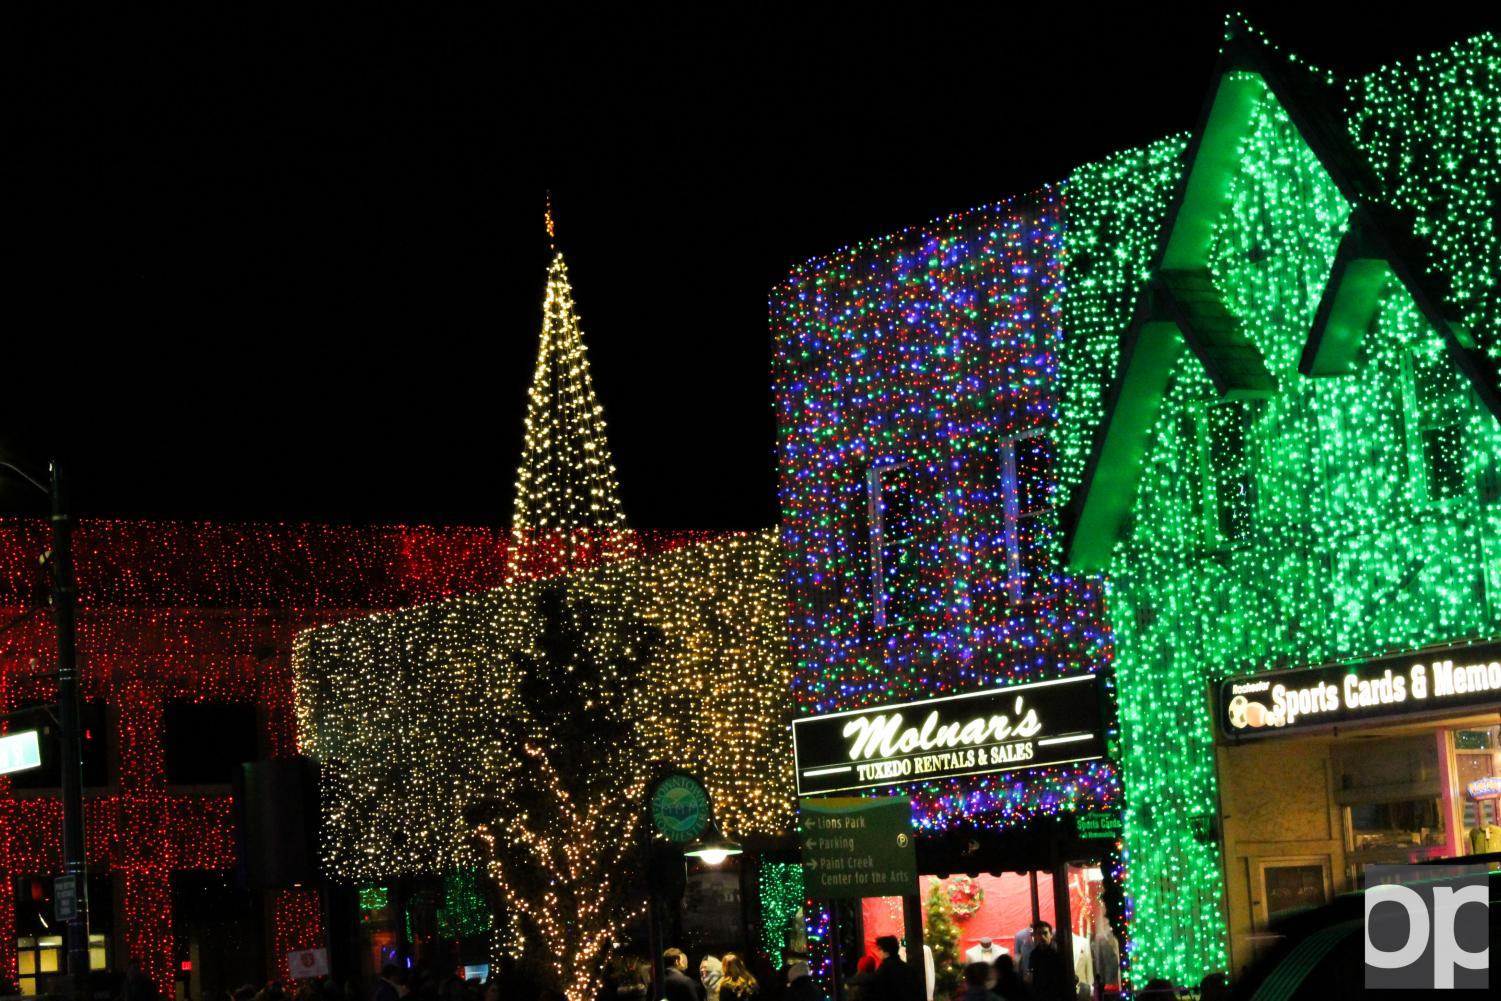 The Big, Bright Light Show in downtown Rochester attracts many to the local businesses in the spirit of the holidays.